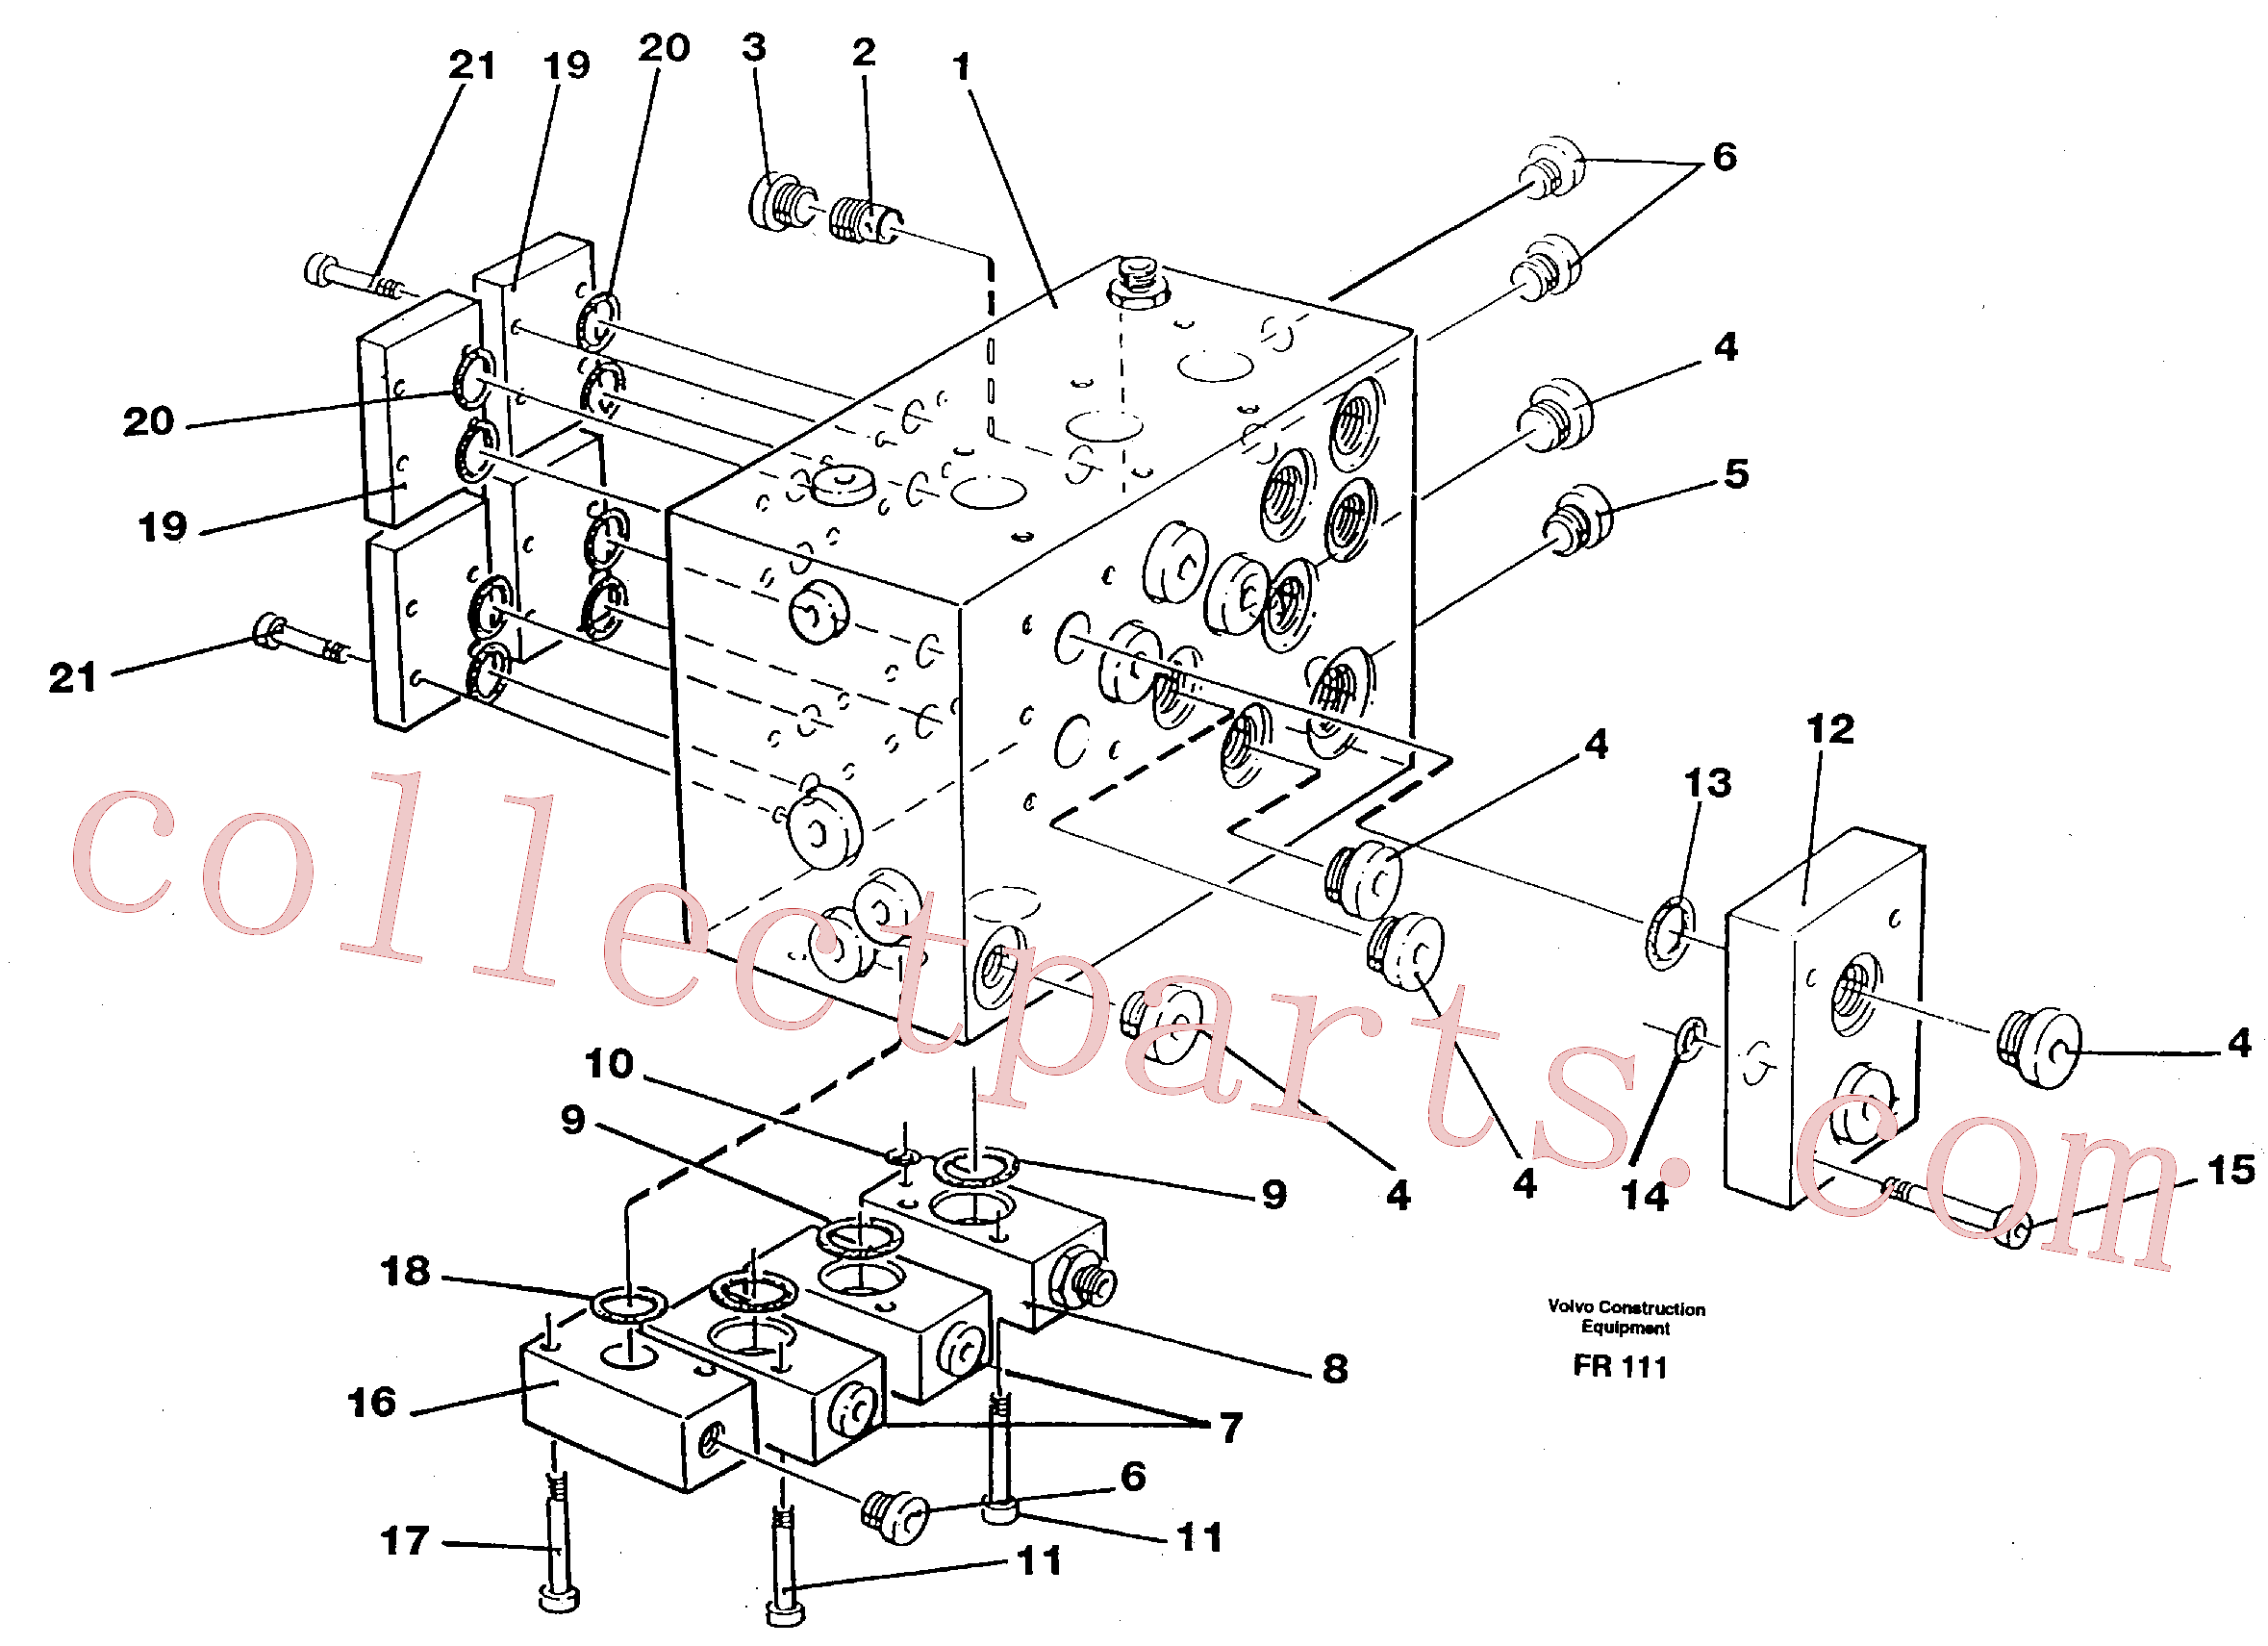 VOE11998170 for Volvo Slew valve assembly block(FR111 assembly)